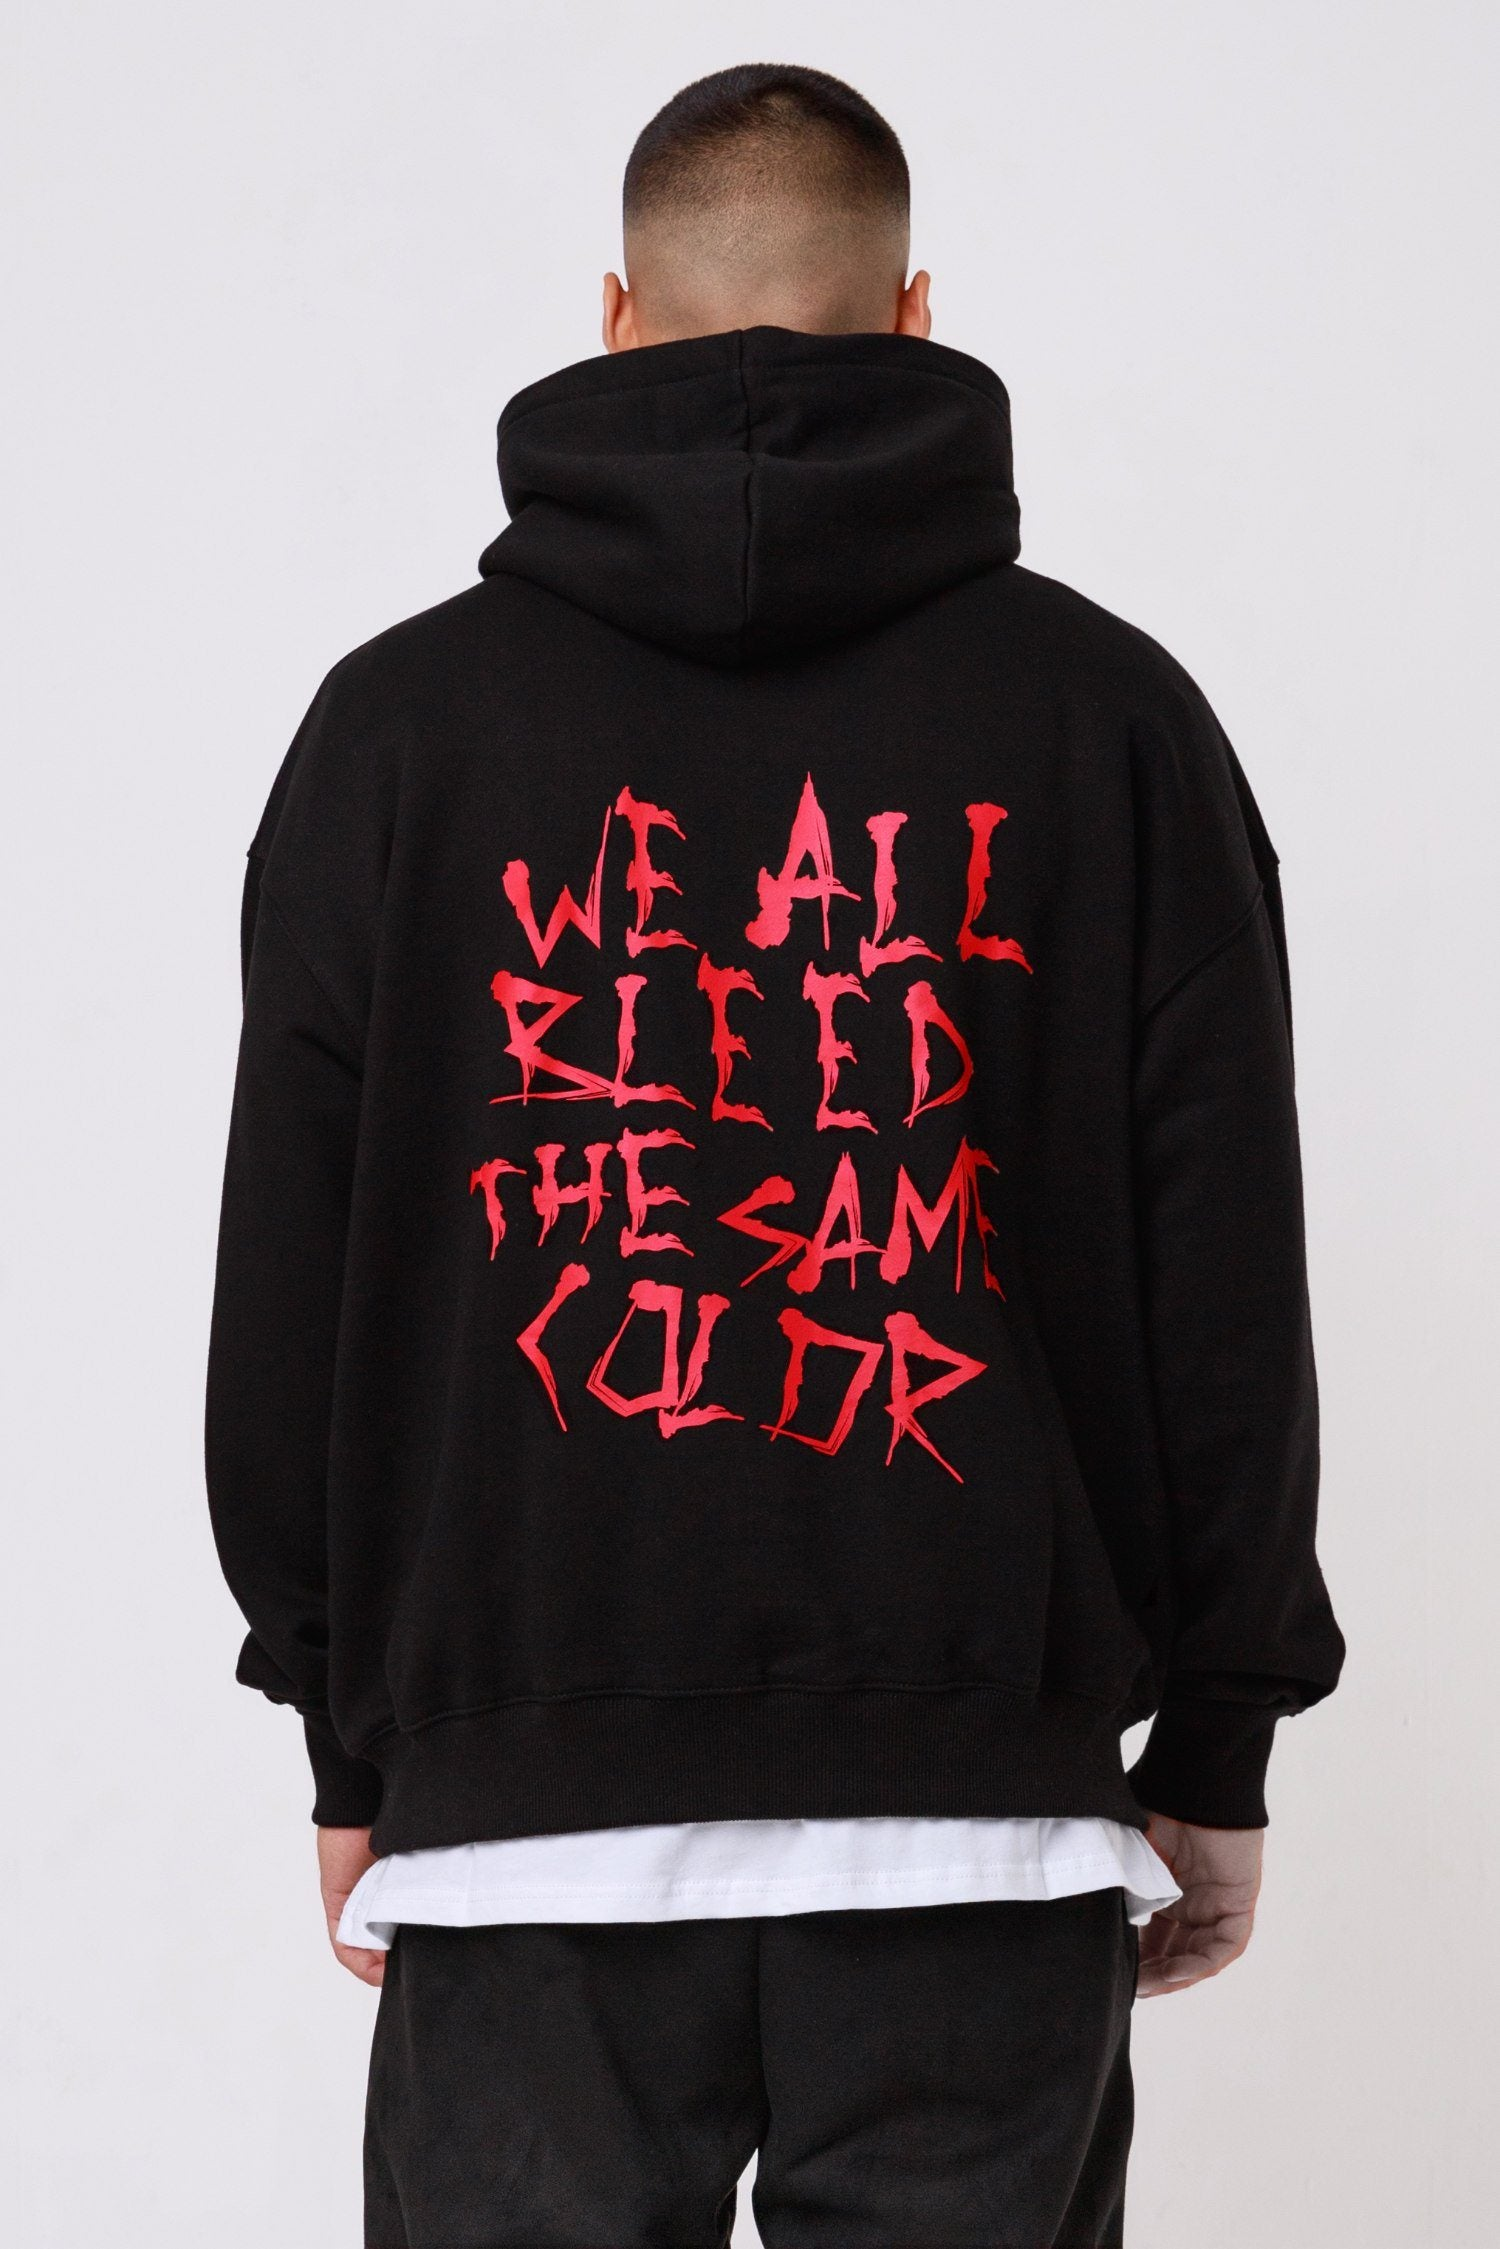 Malibu Oversized Hoodie Black Hoodies One blood